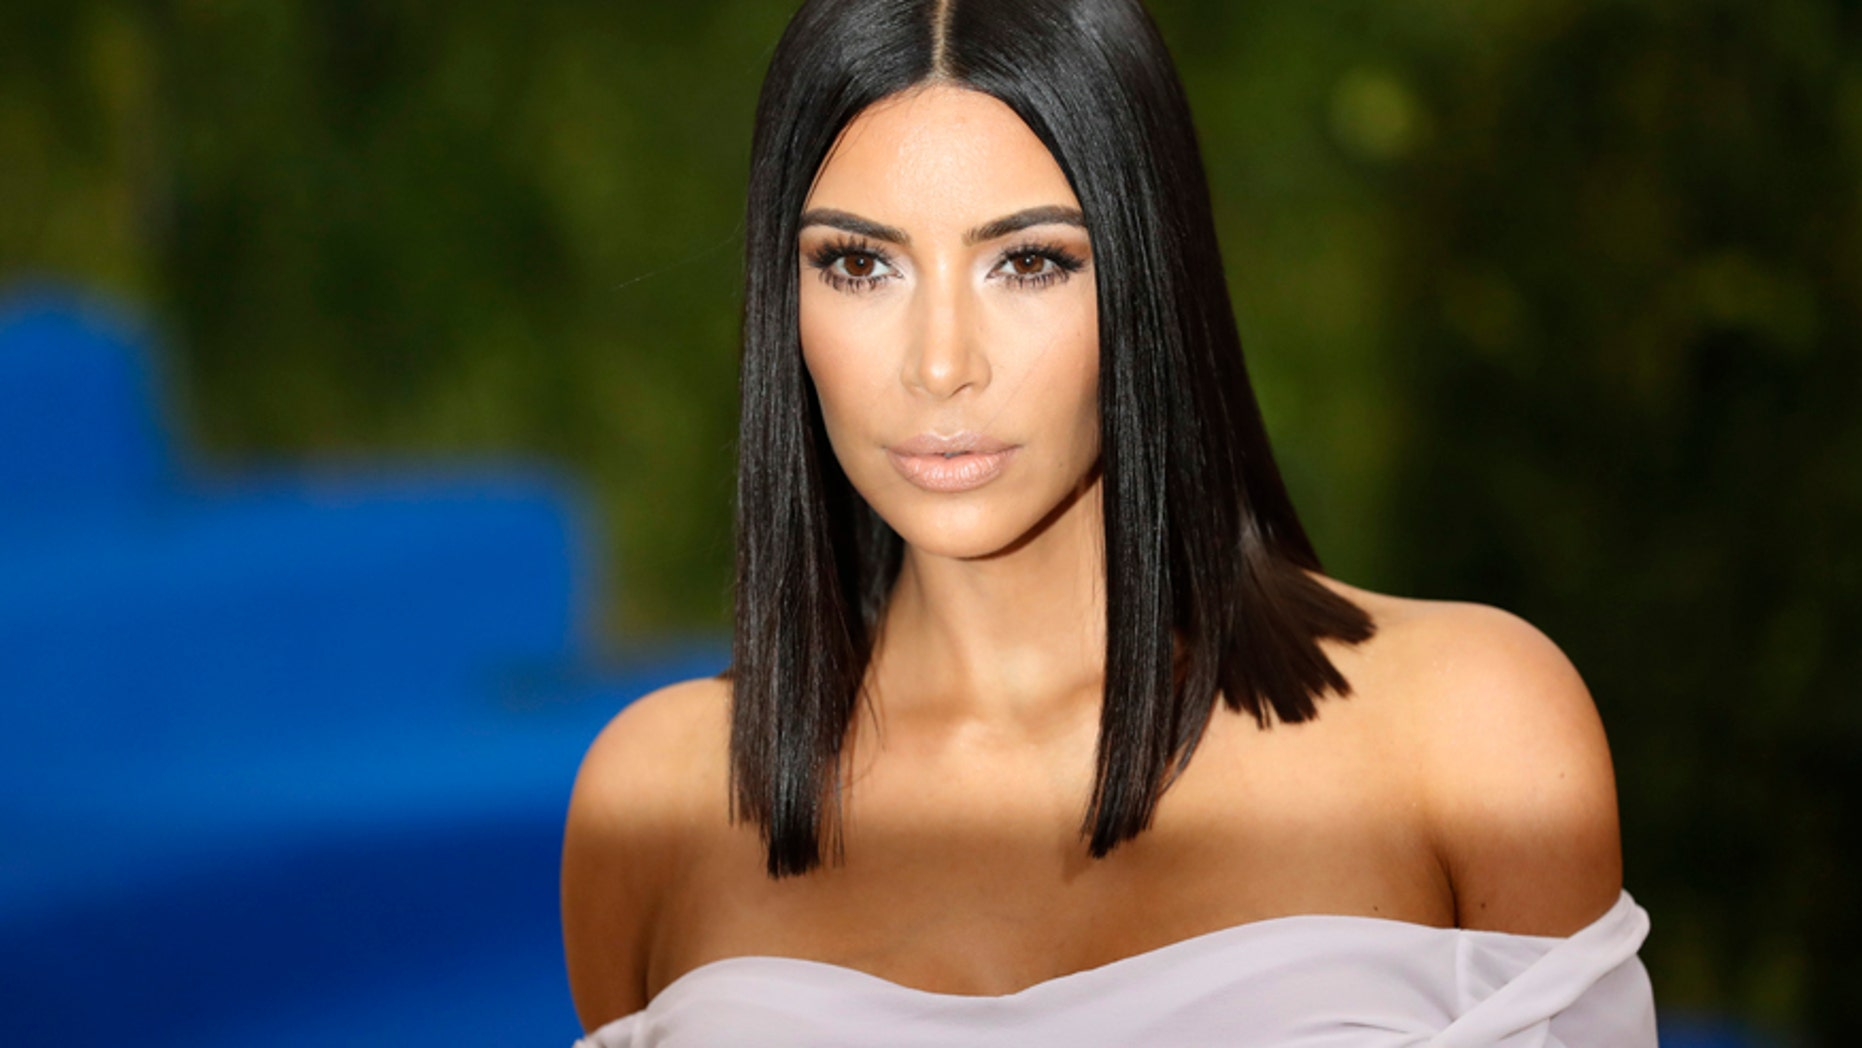 Kim reportedly settled with Vivid Entertainment for $5 million over the release of her sex tape with then-boyfriend Ray J. But that was just the beginning. She took that notoriety and became one of the world's most famous -- and rich -- reality stars.